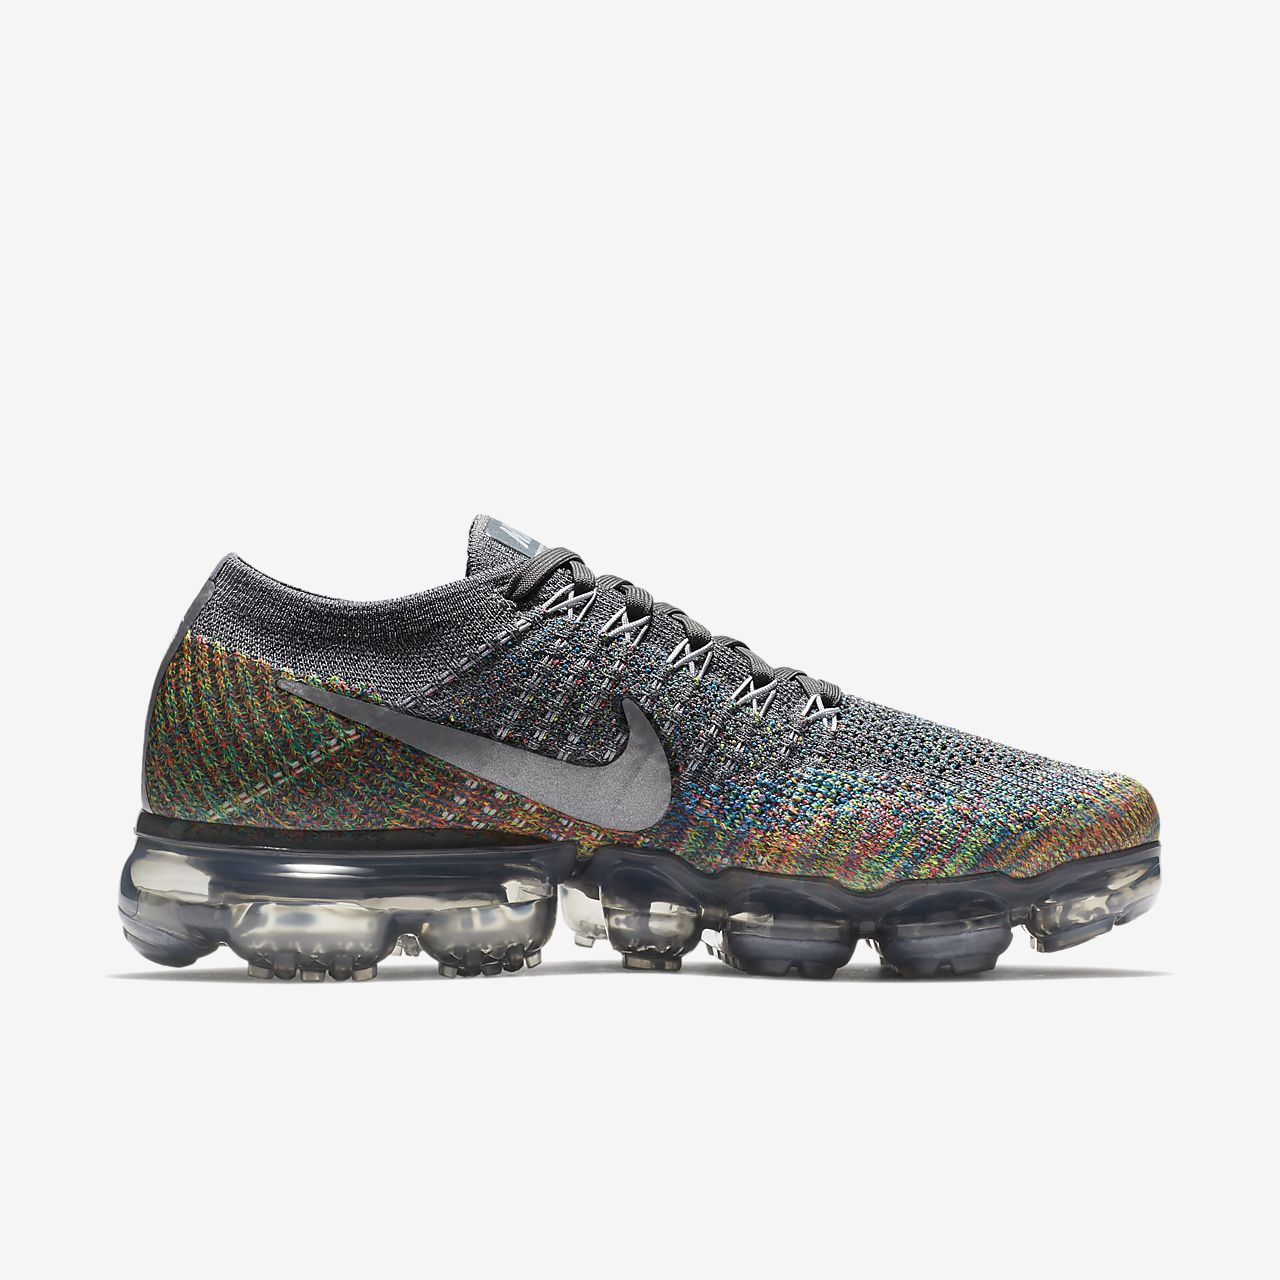 ... Nike Air VaporMax Flyknit Women's Running Shoe